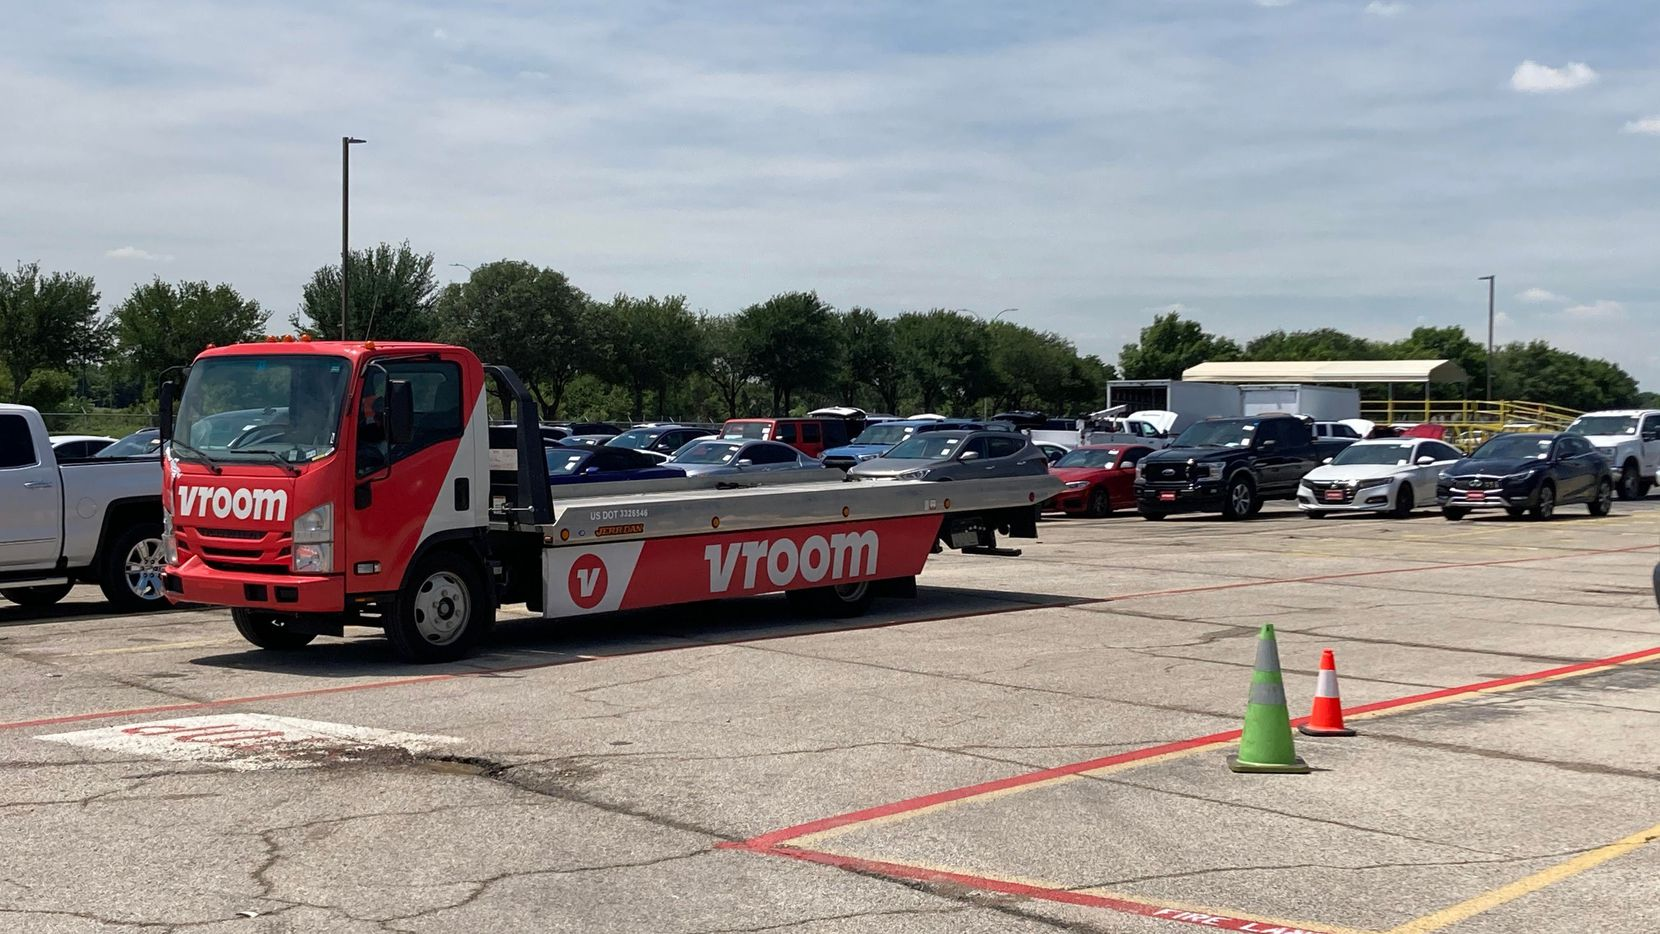 Vroom's new last-mile concierge facility in Euless will allow the company to send a representative to customers' driveways to help answer questions about and navigate their new vehicles.